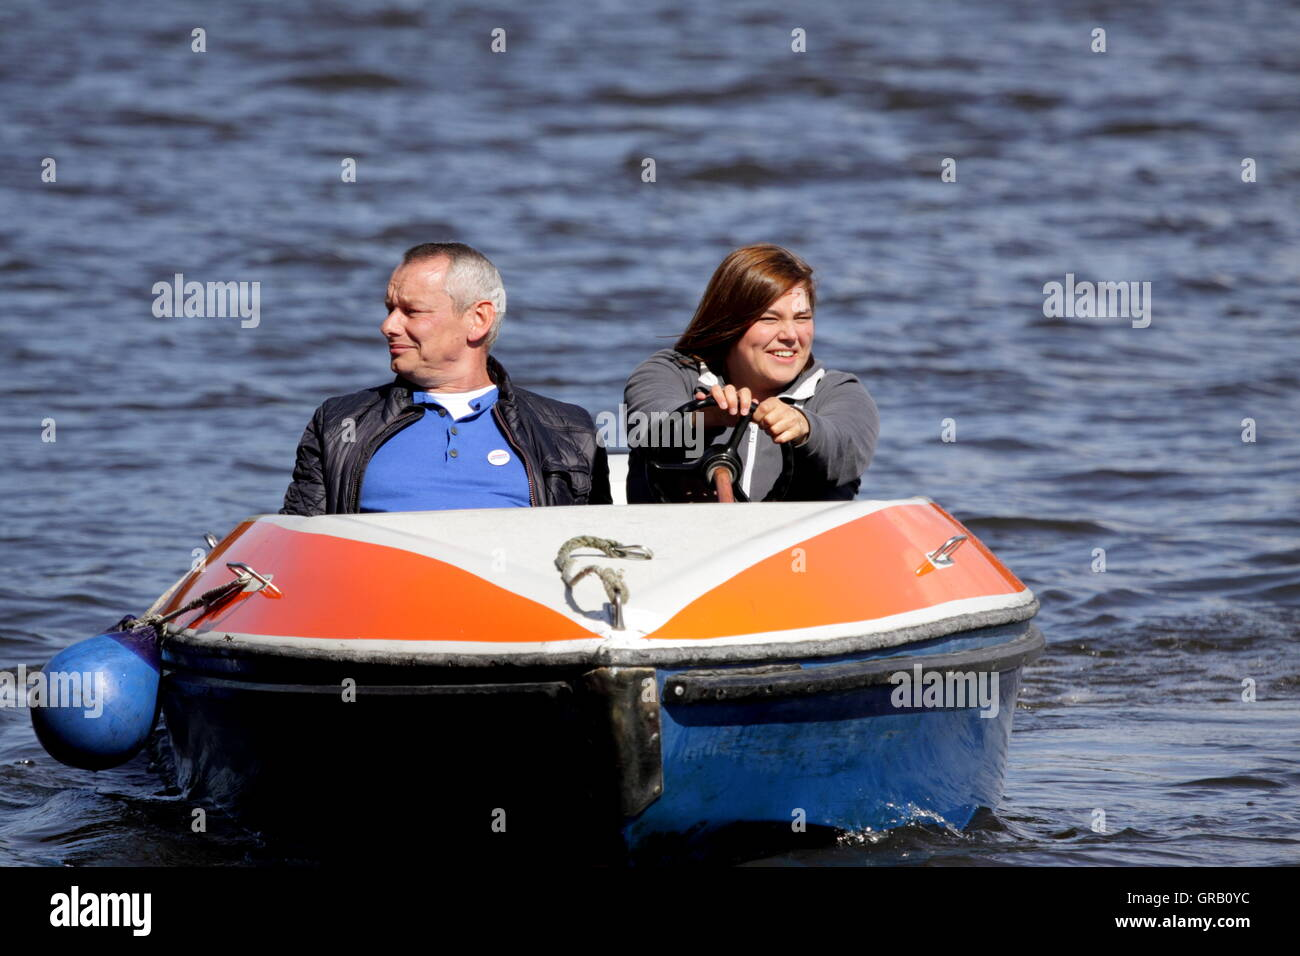 Katharina Fegebank And Harry Schulz In A Pedalo On River Alster - Stock Image